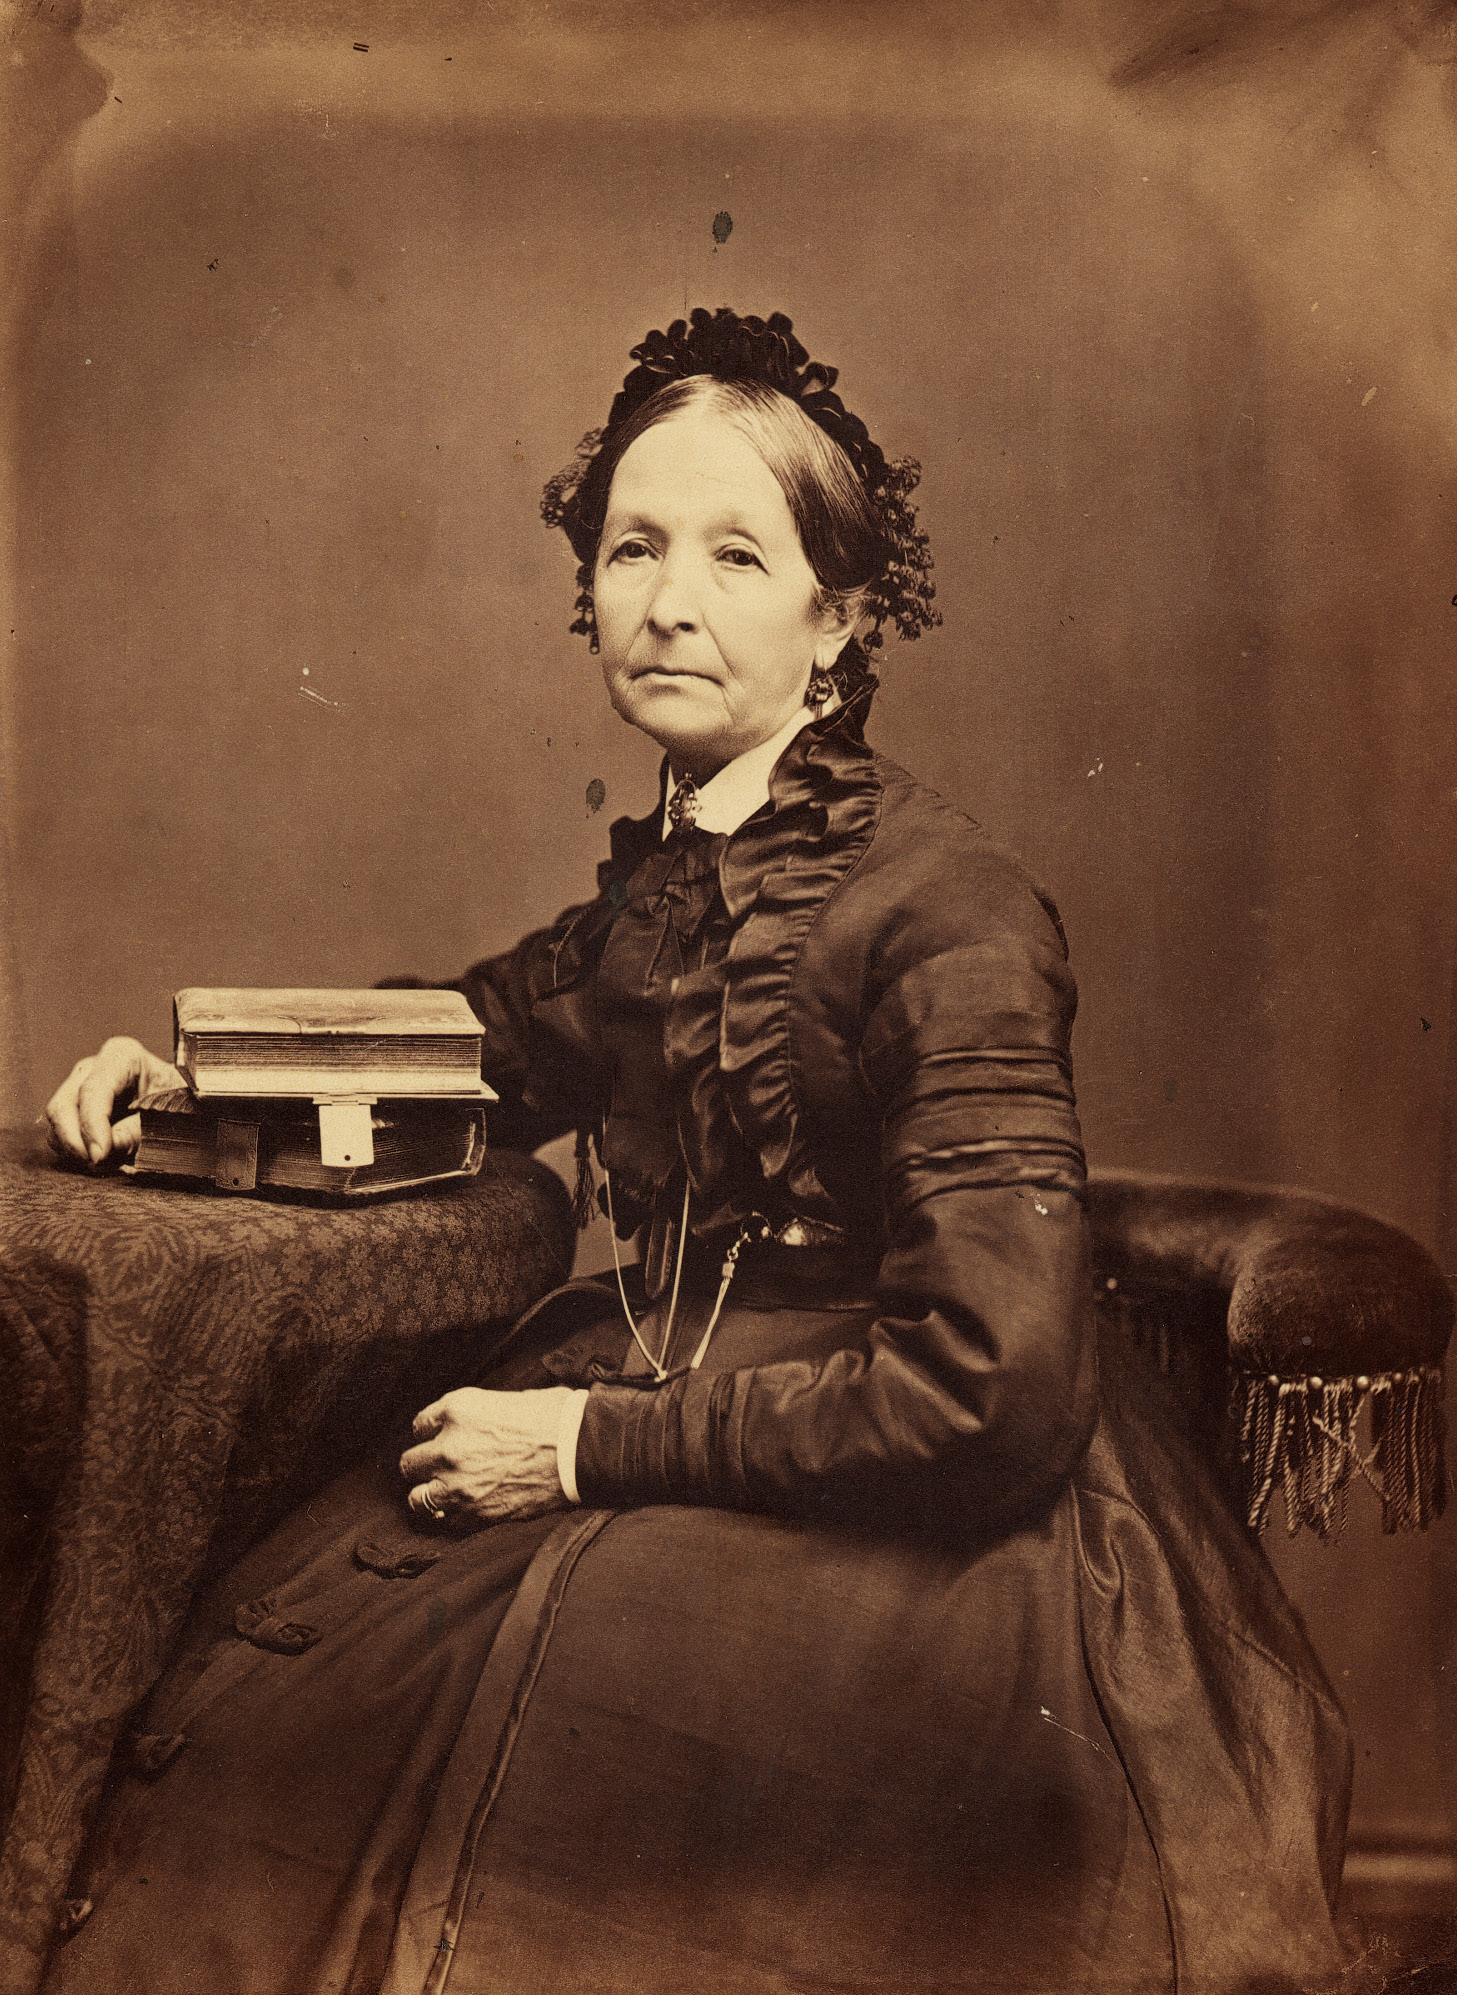 Eliza R. Snow, circa 1875. Snow was a poet, a world traveler, and a renowned leader of Latter-day Saint women. She effectively linked the Nauvoo Relief Society to the resurgence of the organization in the Utah Territory by preserving the Nauvoo Relief Society Minute Book and traveling throughout Mormon settlements to help organize women and encourage them to speak. Photograph by Charles Carter.